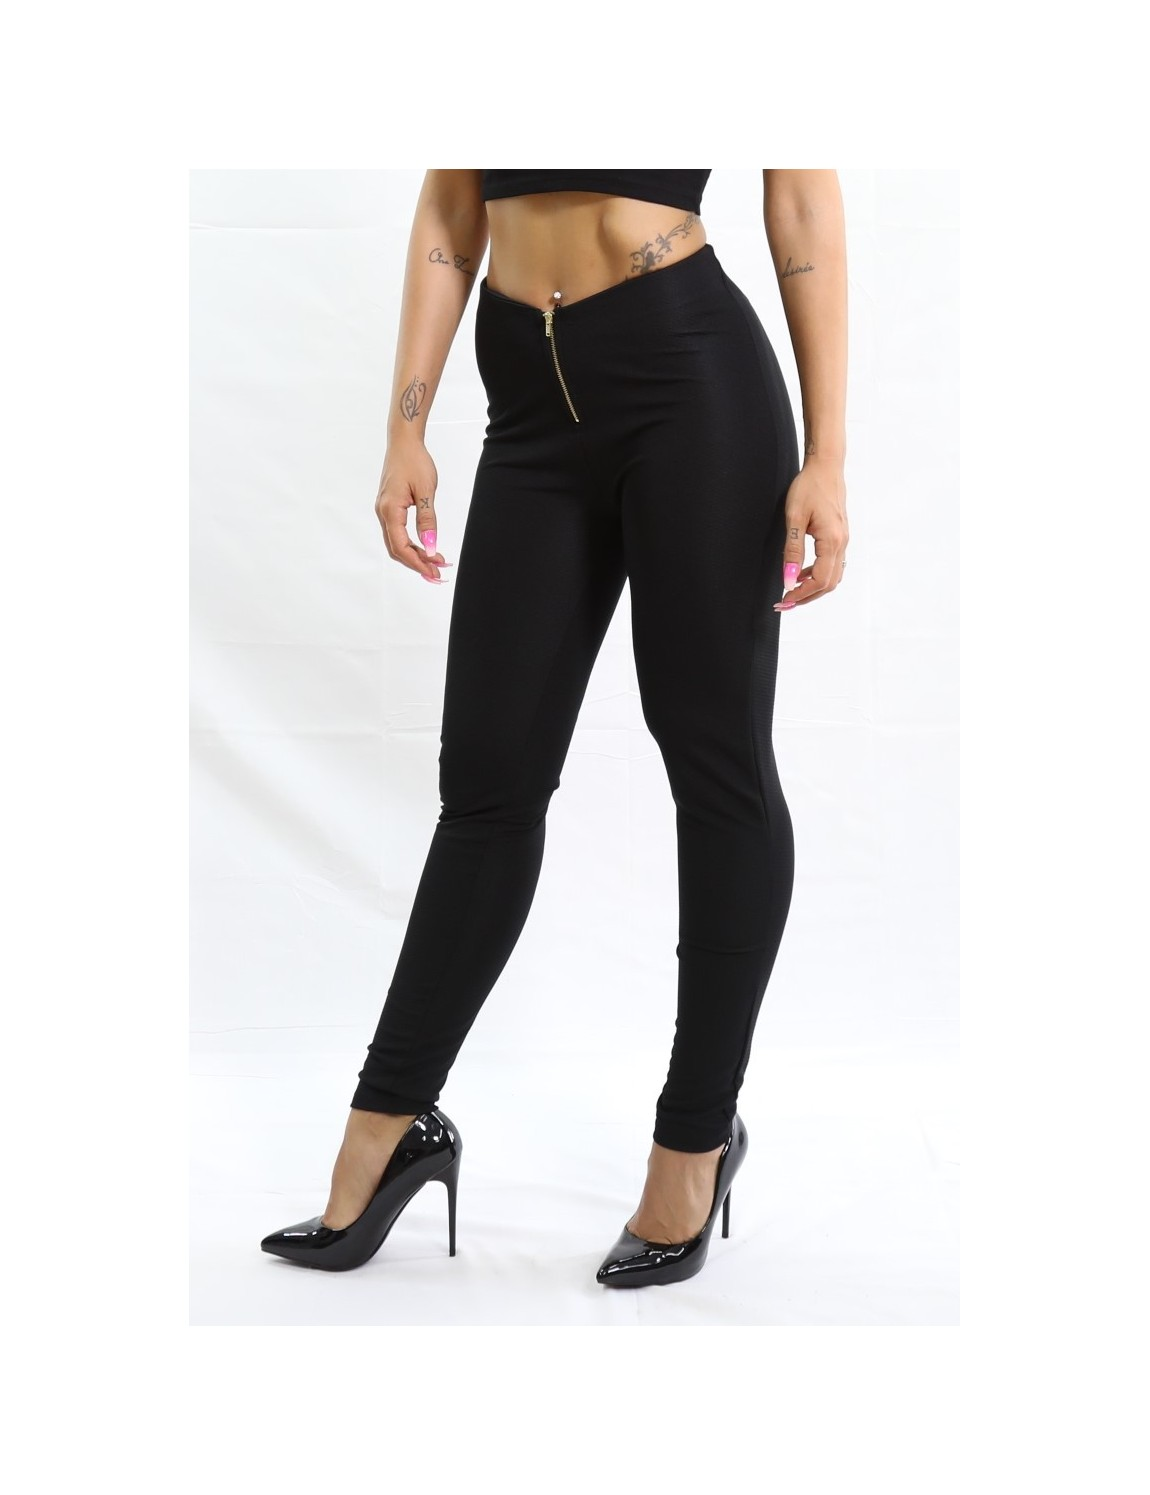 Buy low price, high quality zipper crotch leggings with worldwide shipping on bonjournal.tk zipper crotch leggings reviews: zip crotch jeans elastic waist boxers zipper crotch suit zipper crotch jean crotch zipper jean crotch pants pu. Related Categories.